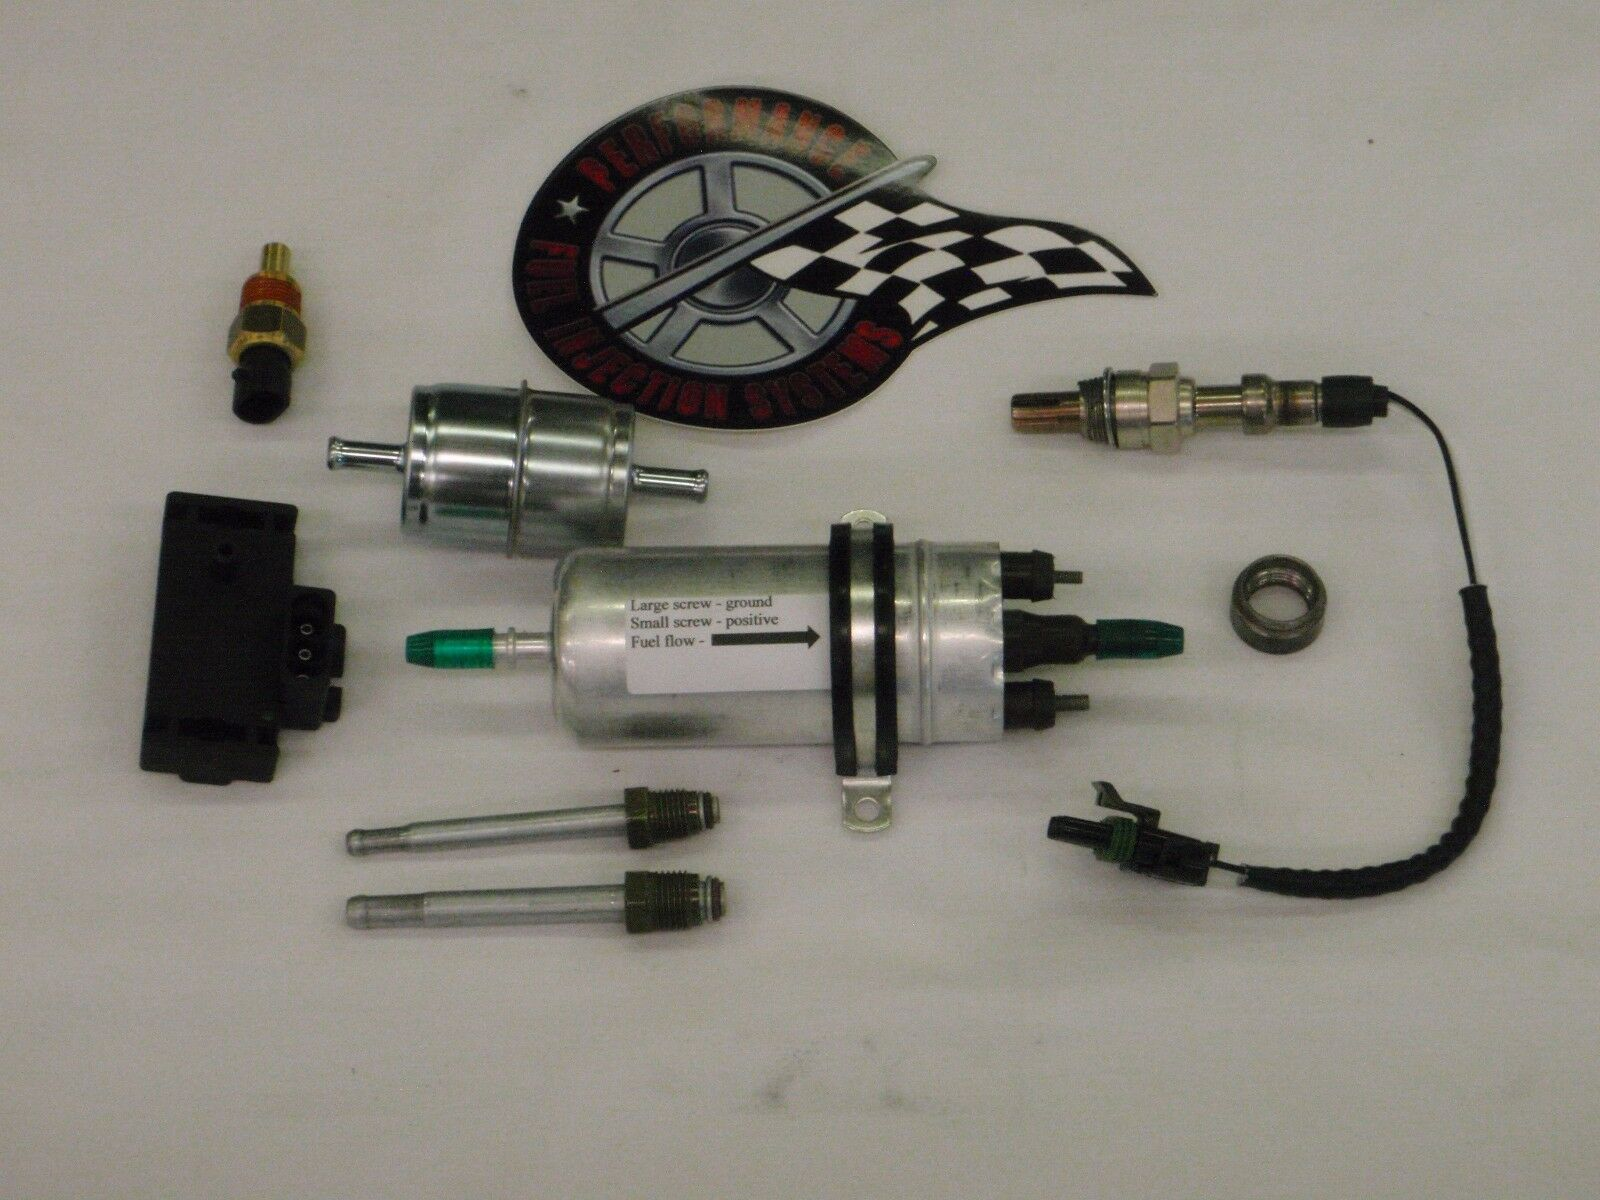 EFI Complete TBI Fuel Injection Conversion -For Stock Small Block Chevy 350  5 7L